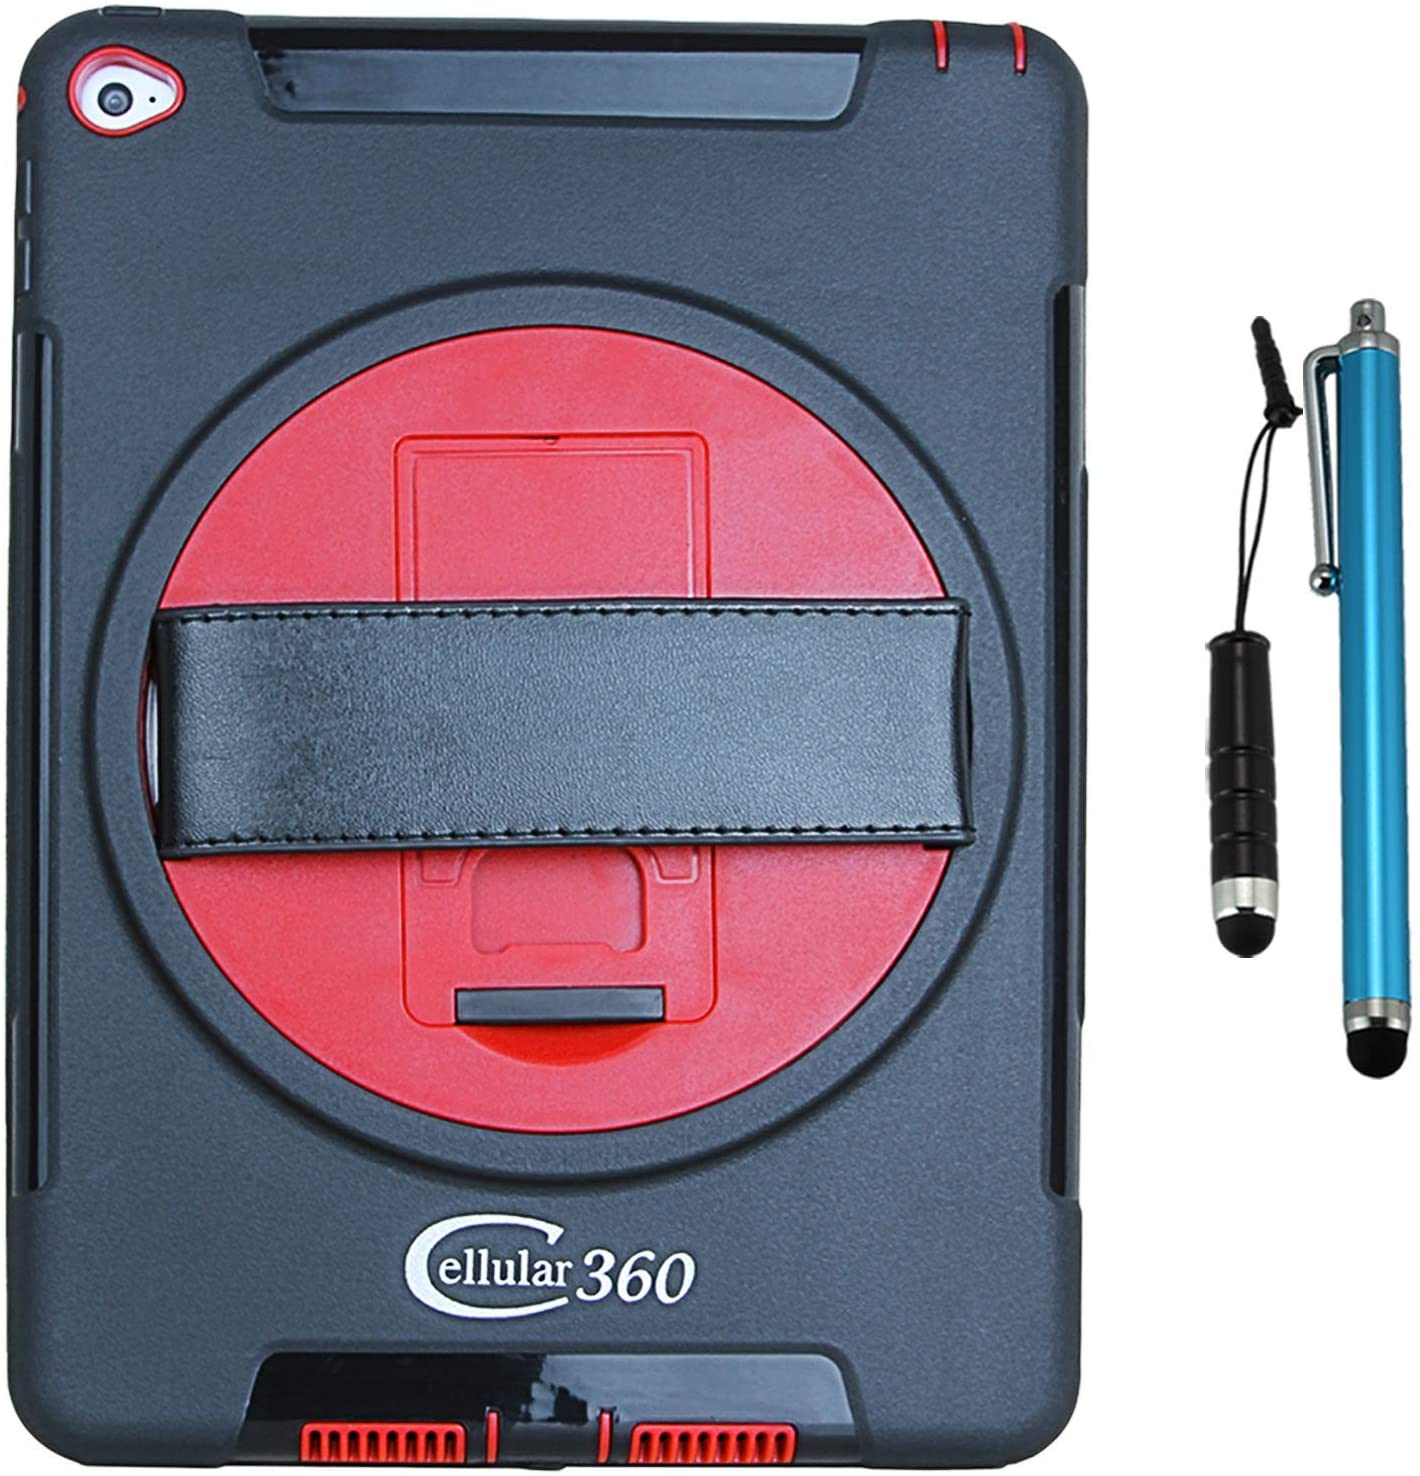 Cellular360 Shockproof Case for iPad Air 2 with a 360 Degree Rotatable Kickstand and Handle (Black/Red)